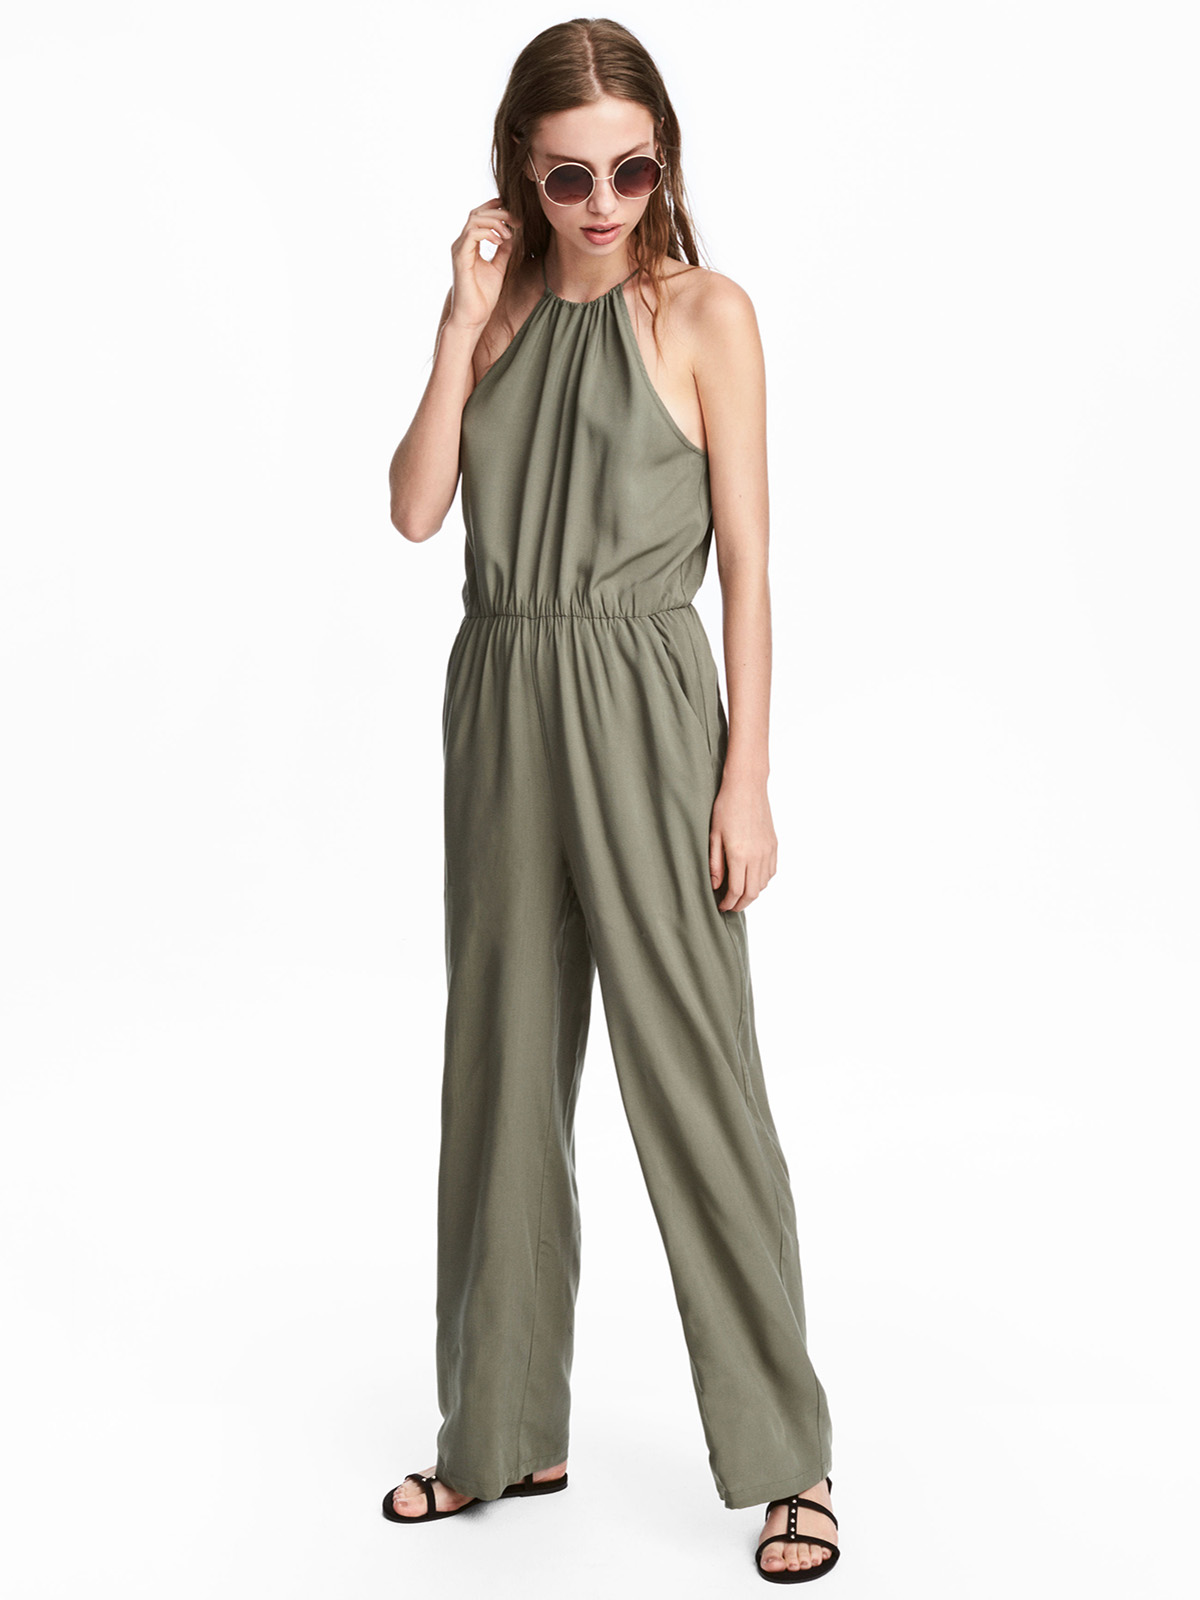 H&m overalls womens neo angle steam shower